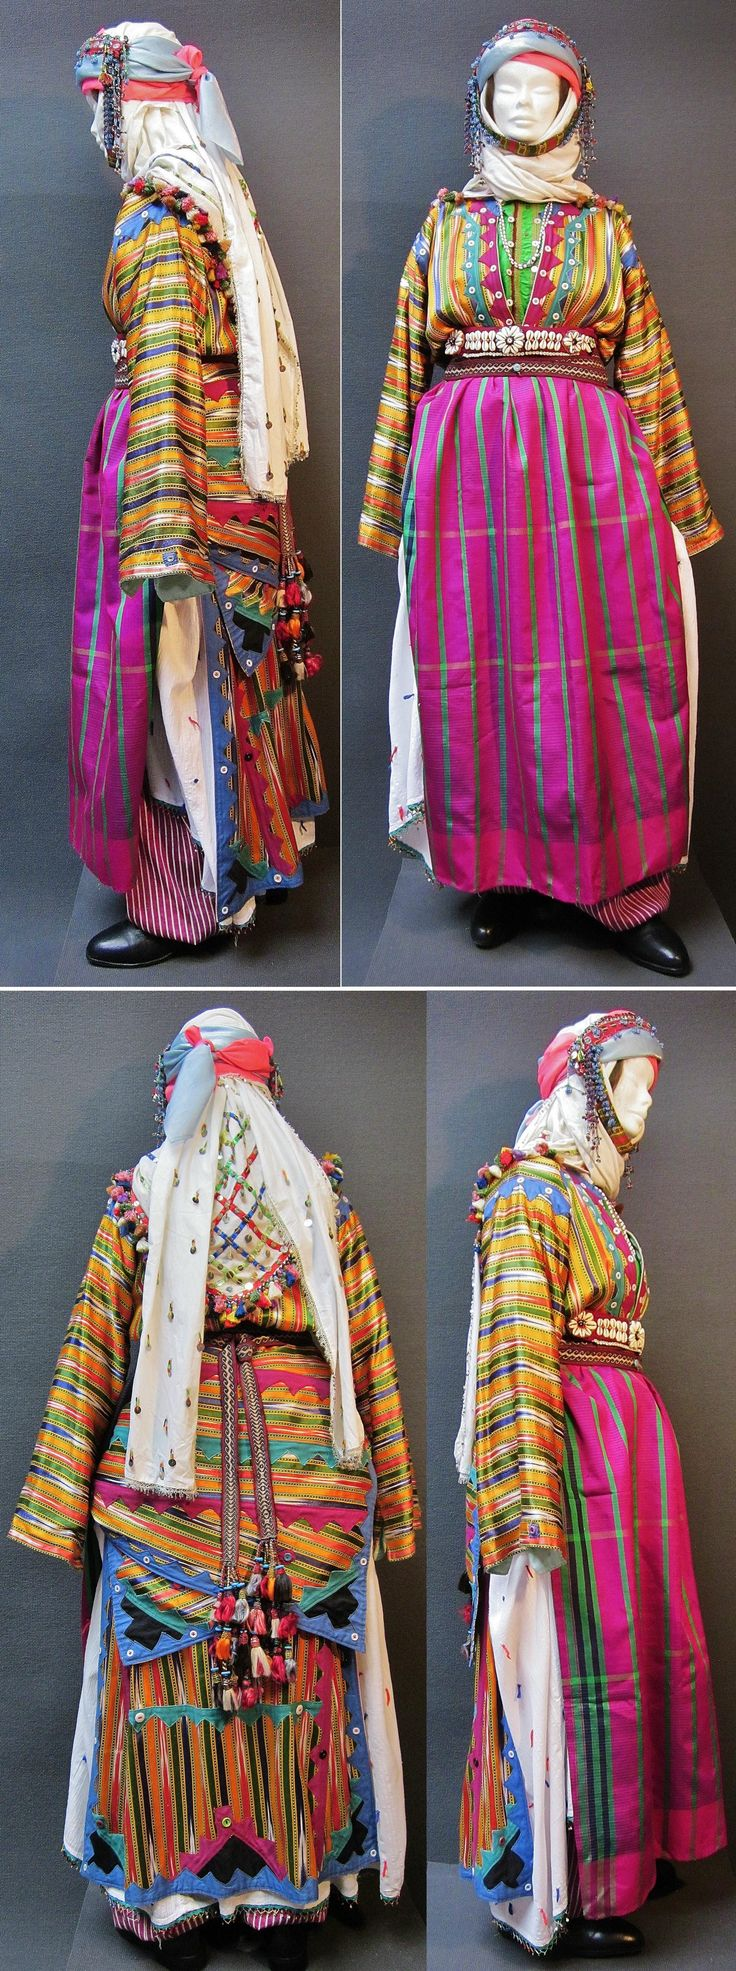 A traditional festive costume of the Üsküdarlı Tahtacı, from the Bergama region.  Clothing style: ca. 1970. The Tahtacı are Alevi Türkmen. This costume is similar to those of nearby Kozan Yaylası, but it is simpler, and with beadwork ornaments instead of silver jewelry. (Kavak Costume Collection - Antwerpen/Belgium).